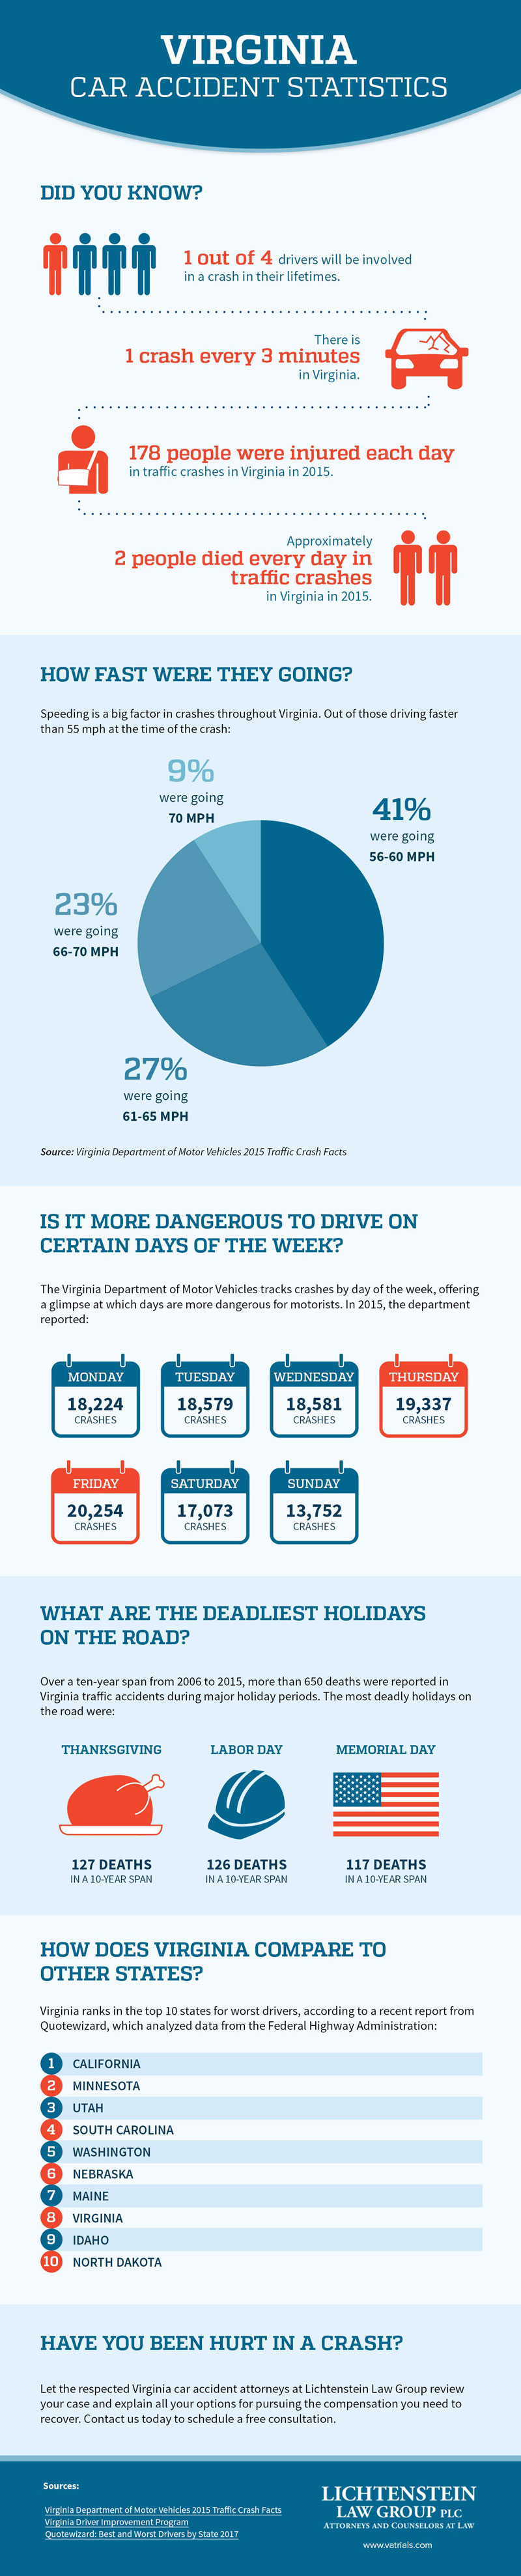 Virginia Car Accident Statistics